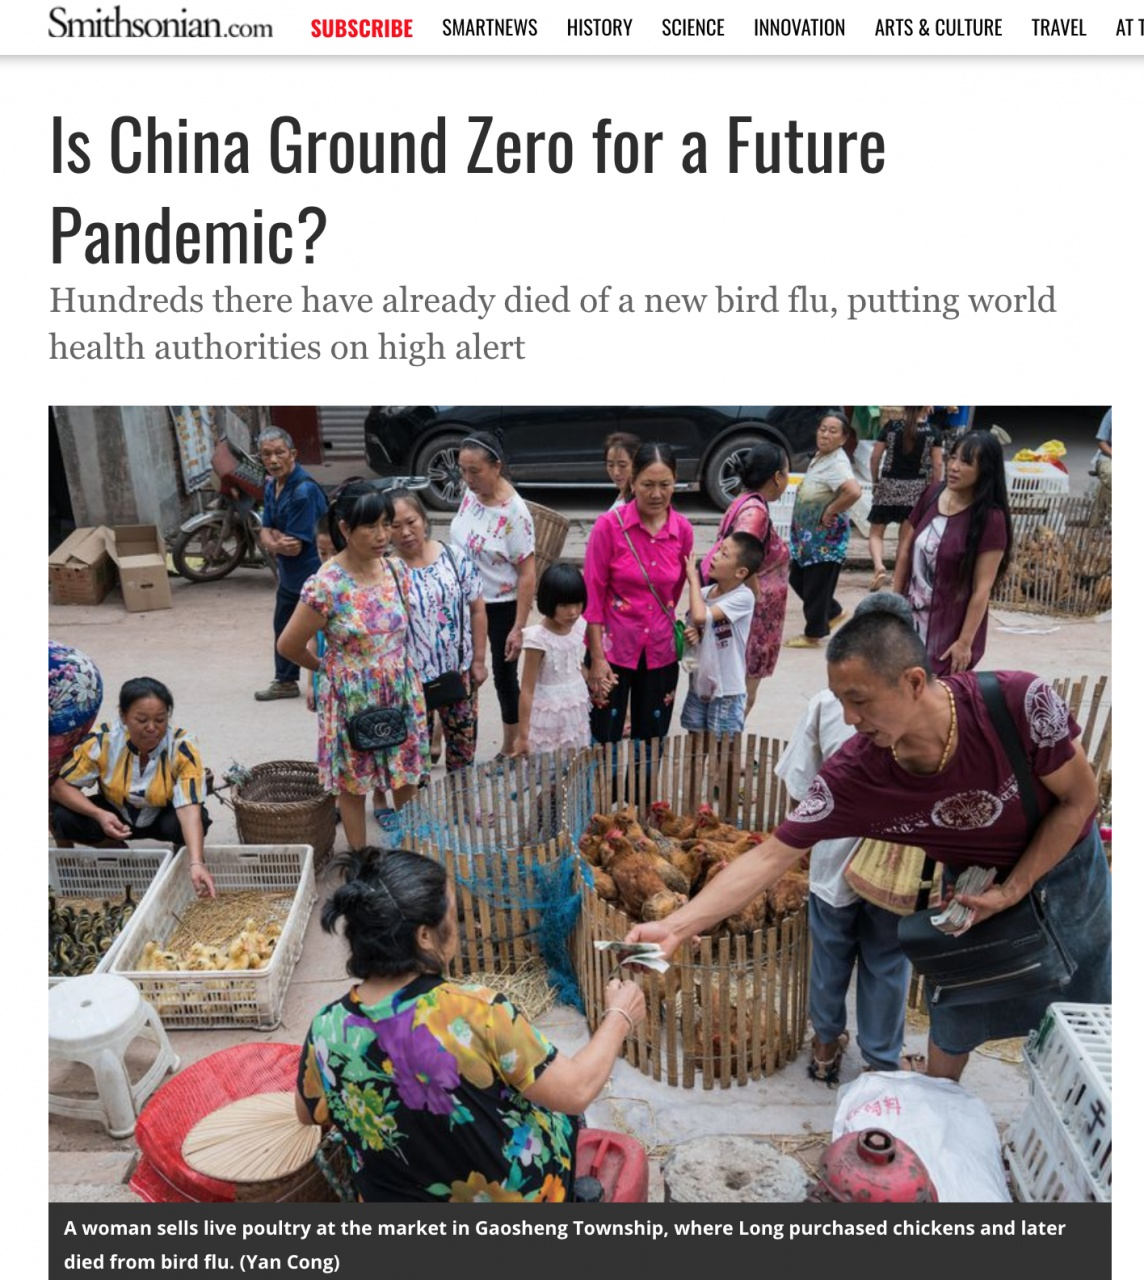 Is China Ground Zero for a Future Pandemic?